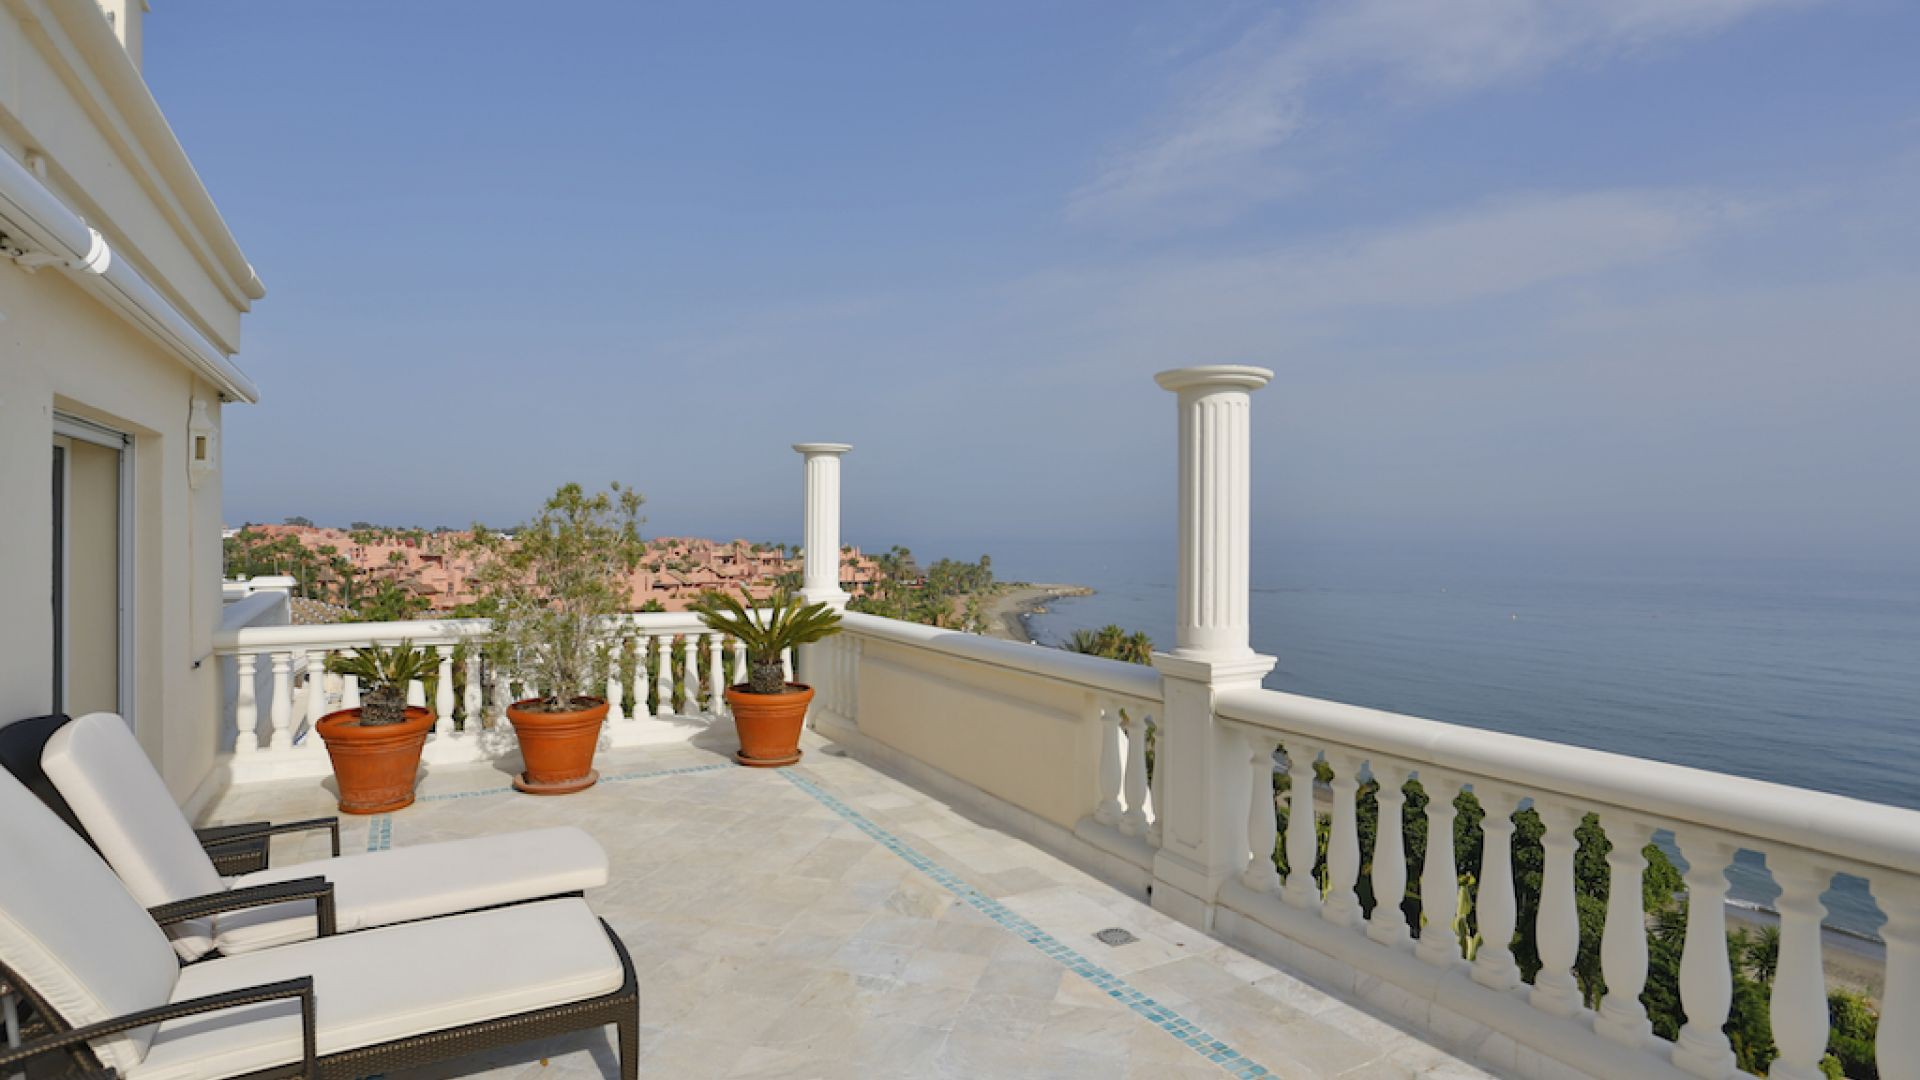 Apartment for Sale at Spectacular front line beach position with panoramic sea views New Golden Mile Estepona, Costa Del Sol 29680 Spain